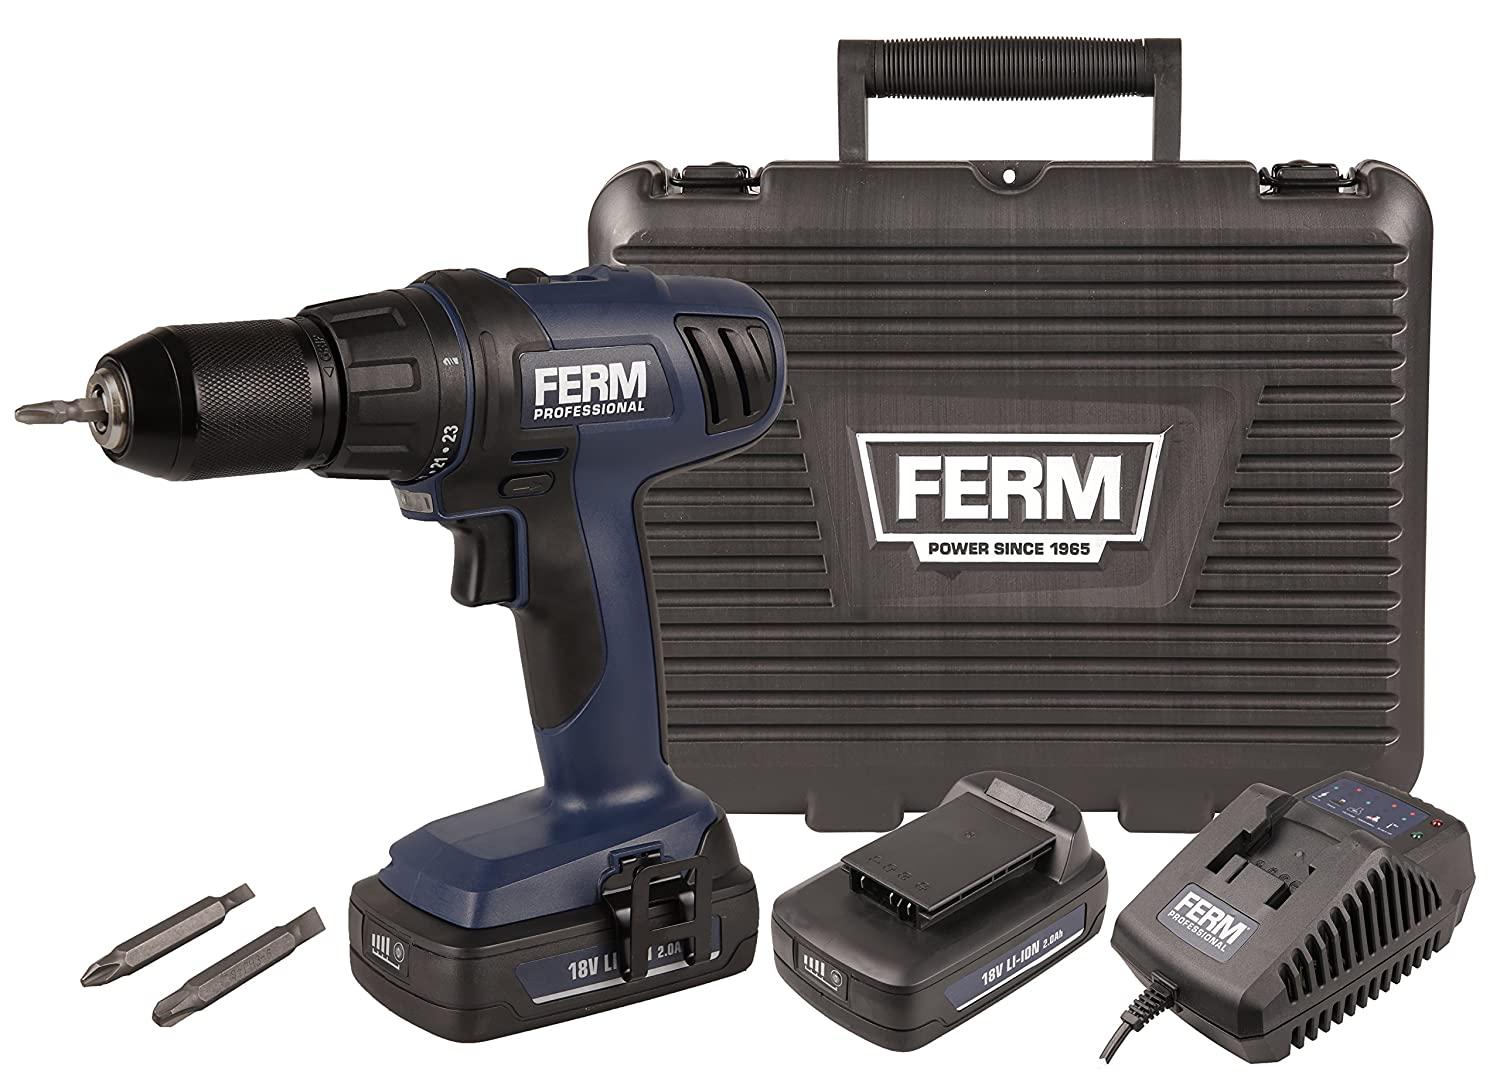 FERM CDM1122P Professional Cordless Drill-18V 2,0Ah-2 Speed-Torque 50Nm-with 2 18V Lithium-Ion Batteries, 2 Screwdriver bits and a Storage case, 18 V, Black/Blue